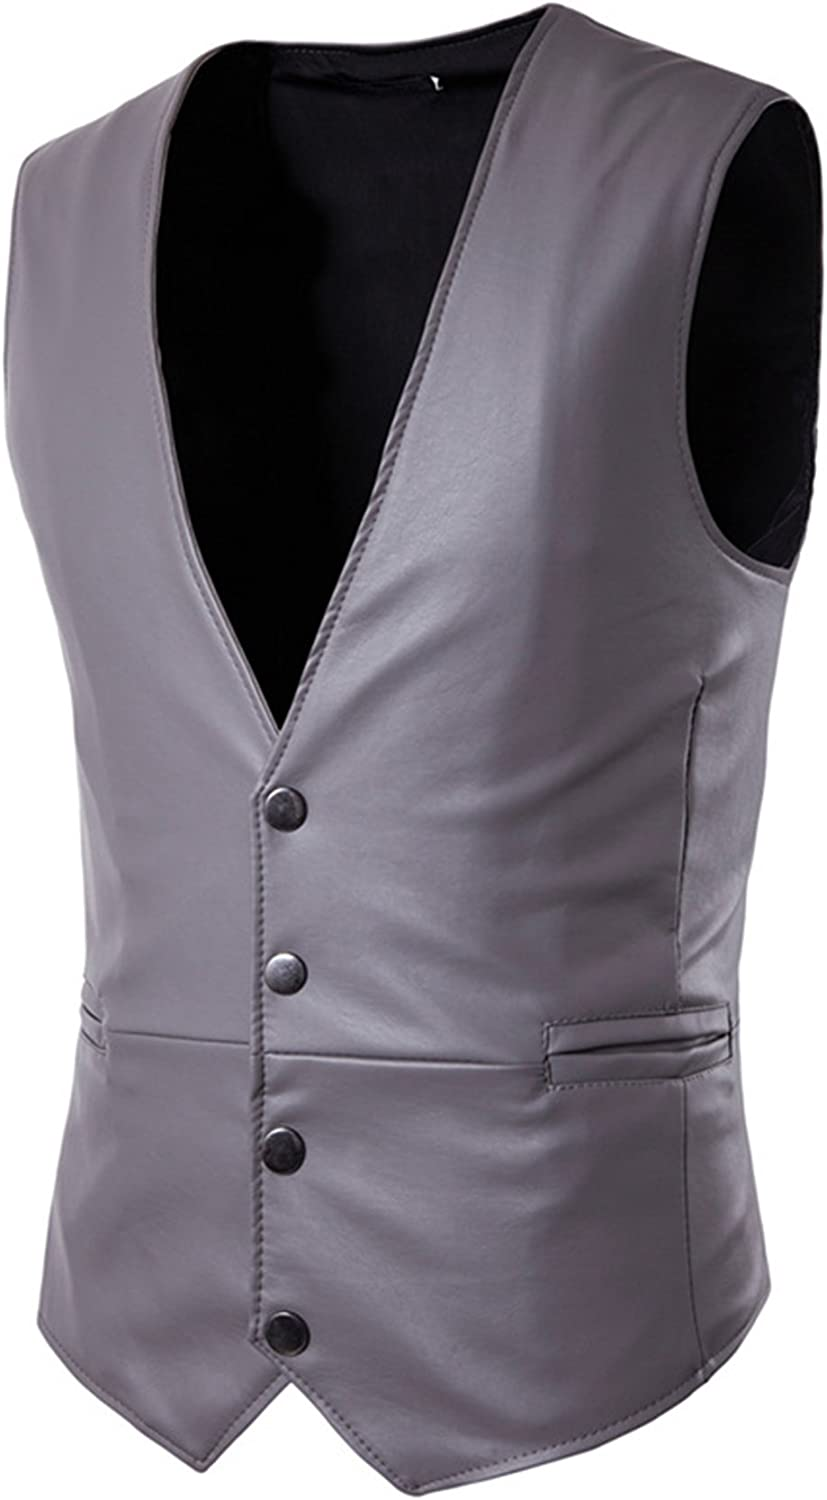 C2S Sleeveless Casual Leather Waistcoat Single Breasted Gothic Vintage Style Vests